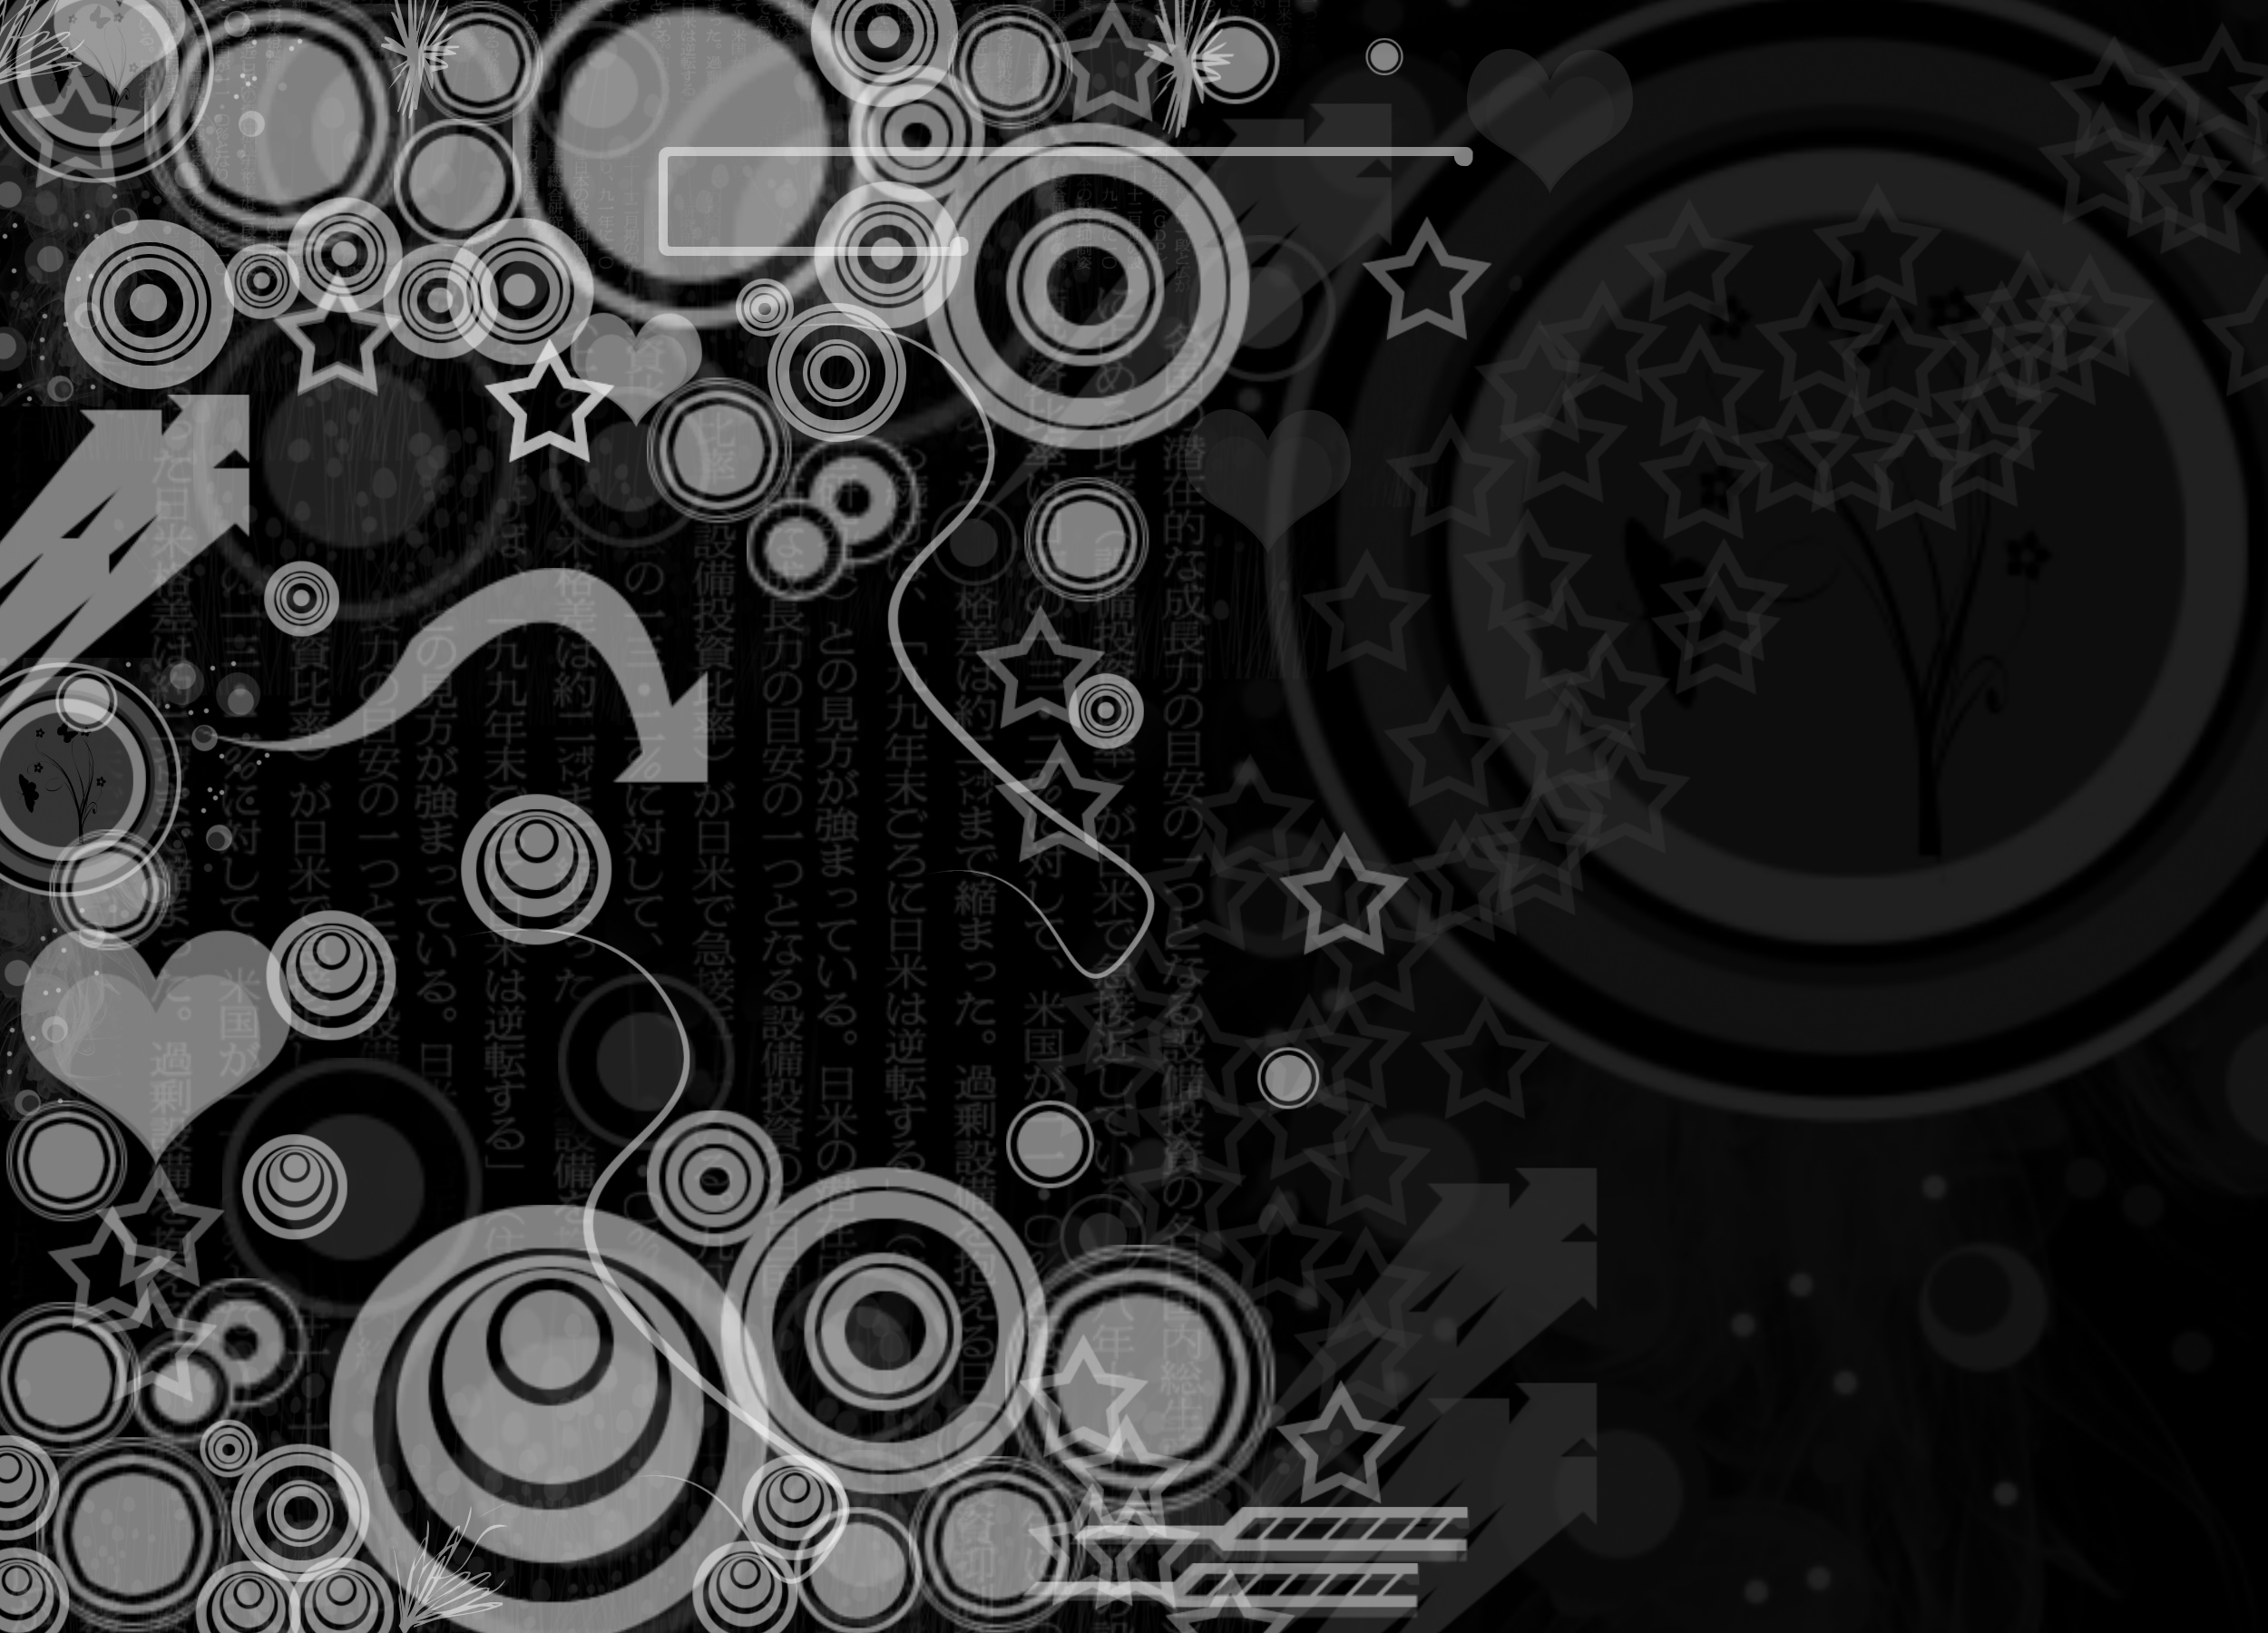 Black And White Background Powerpoint Backgrounds For Free Powerpoint Templates